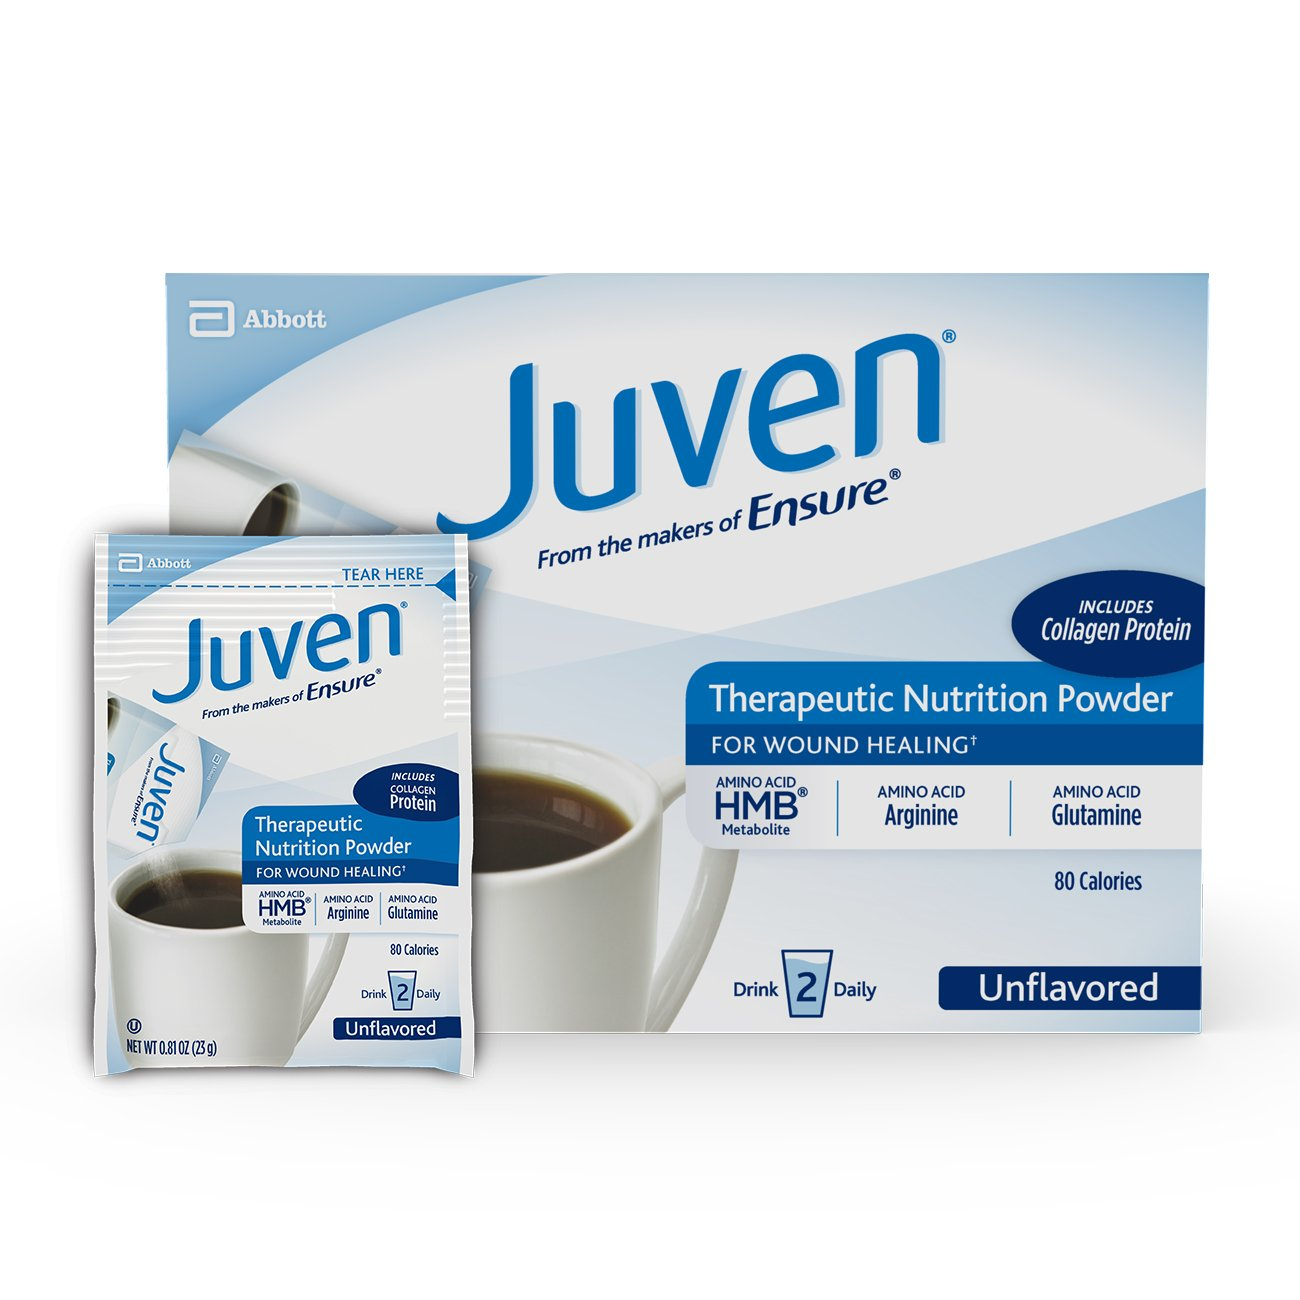 Juven Therapeutic Nutrition Drink Mix Powder for Wound Healing Includes Collagen Protein, Unflavored, 30 Count by Juven